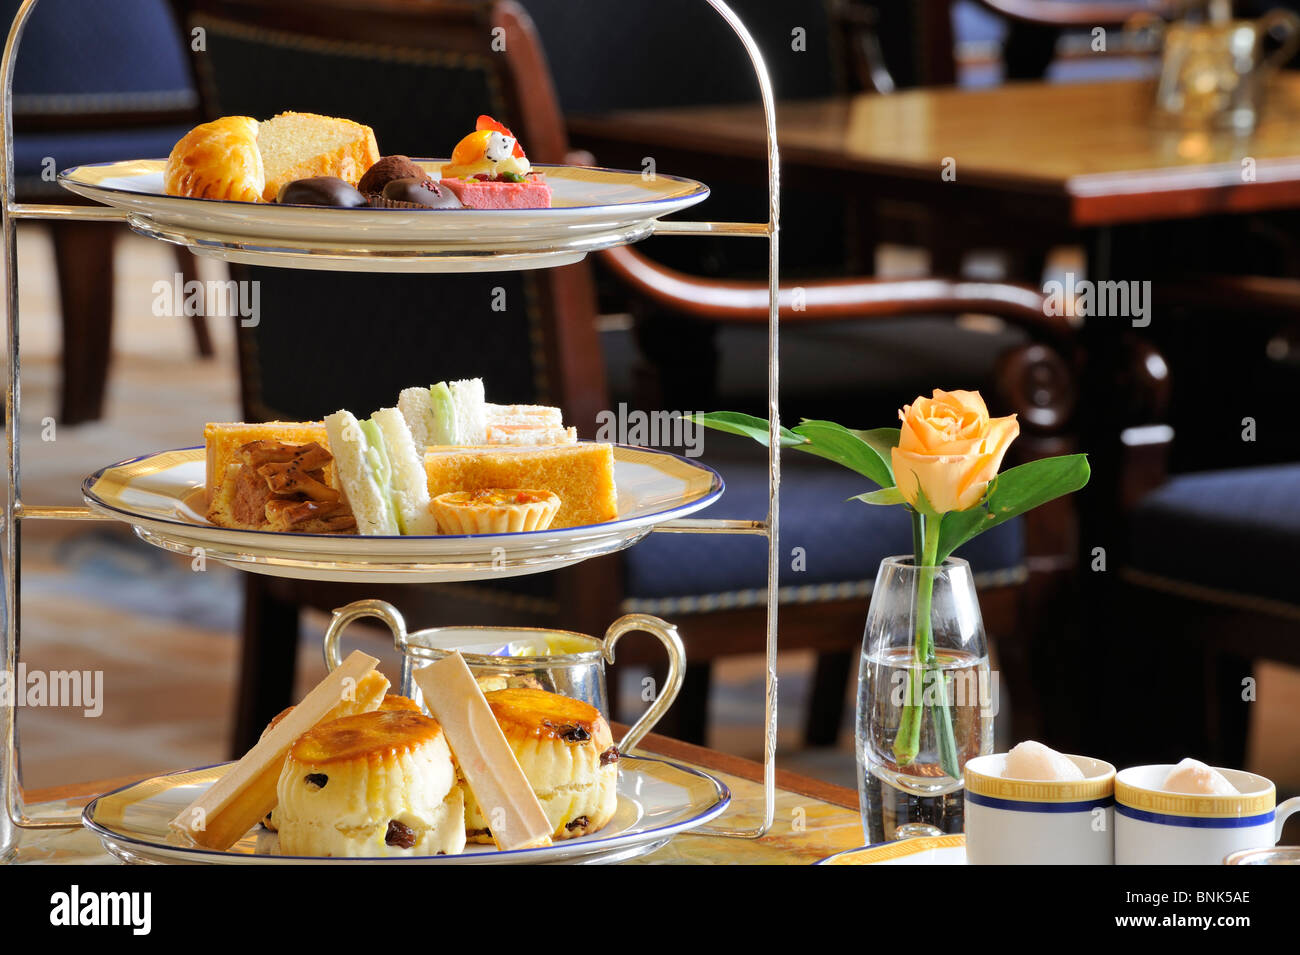 Traditional Afternoon tea in the lobby The Peninsula Hotel Hong Kong 5 star luxury hotel Afternoon tea - Stock Image